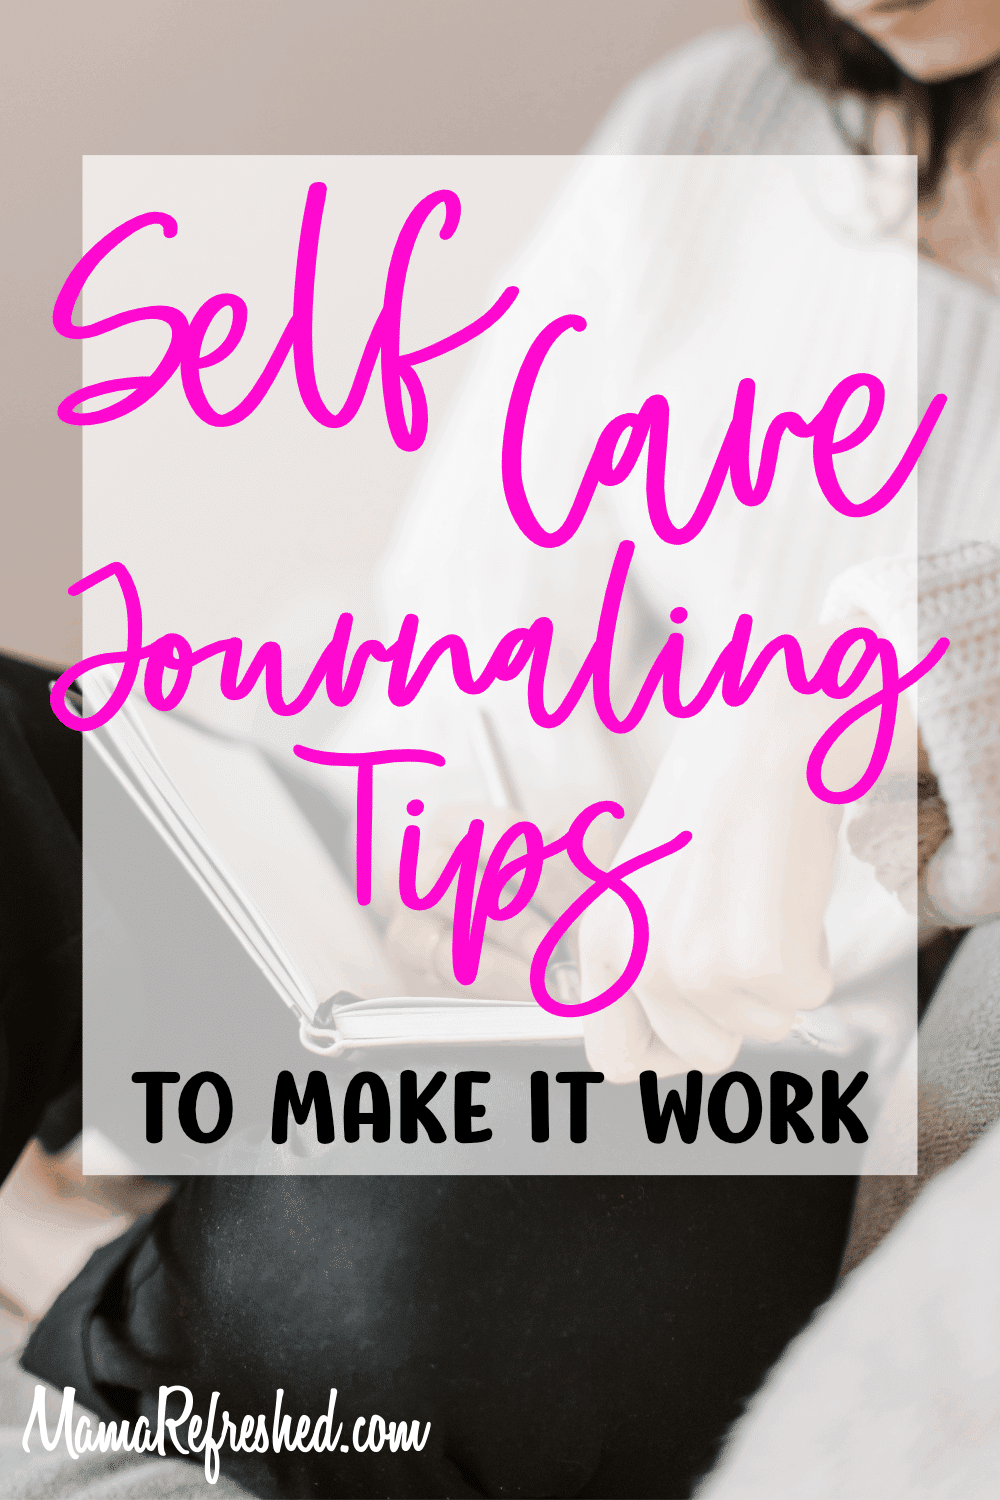 Self Care Journaling Tips to Make It Work